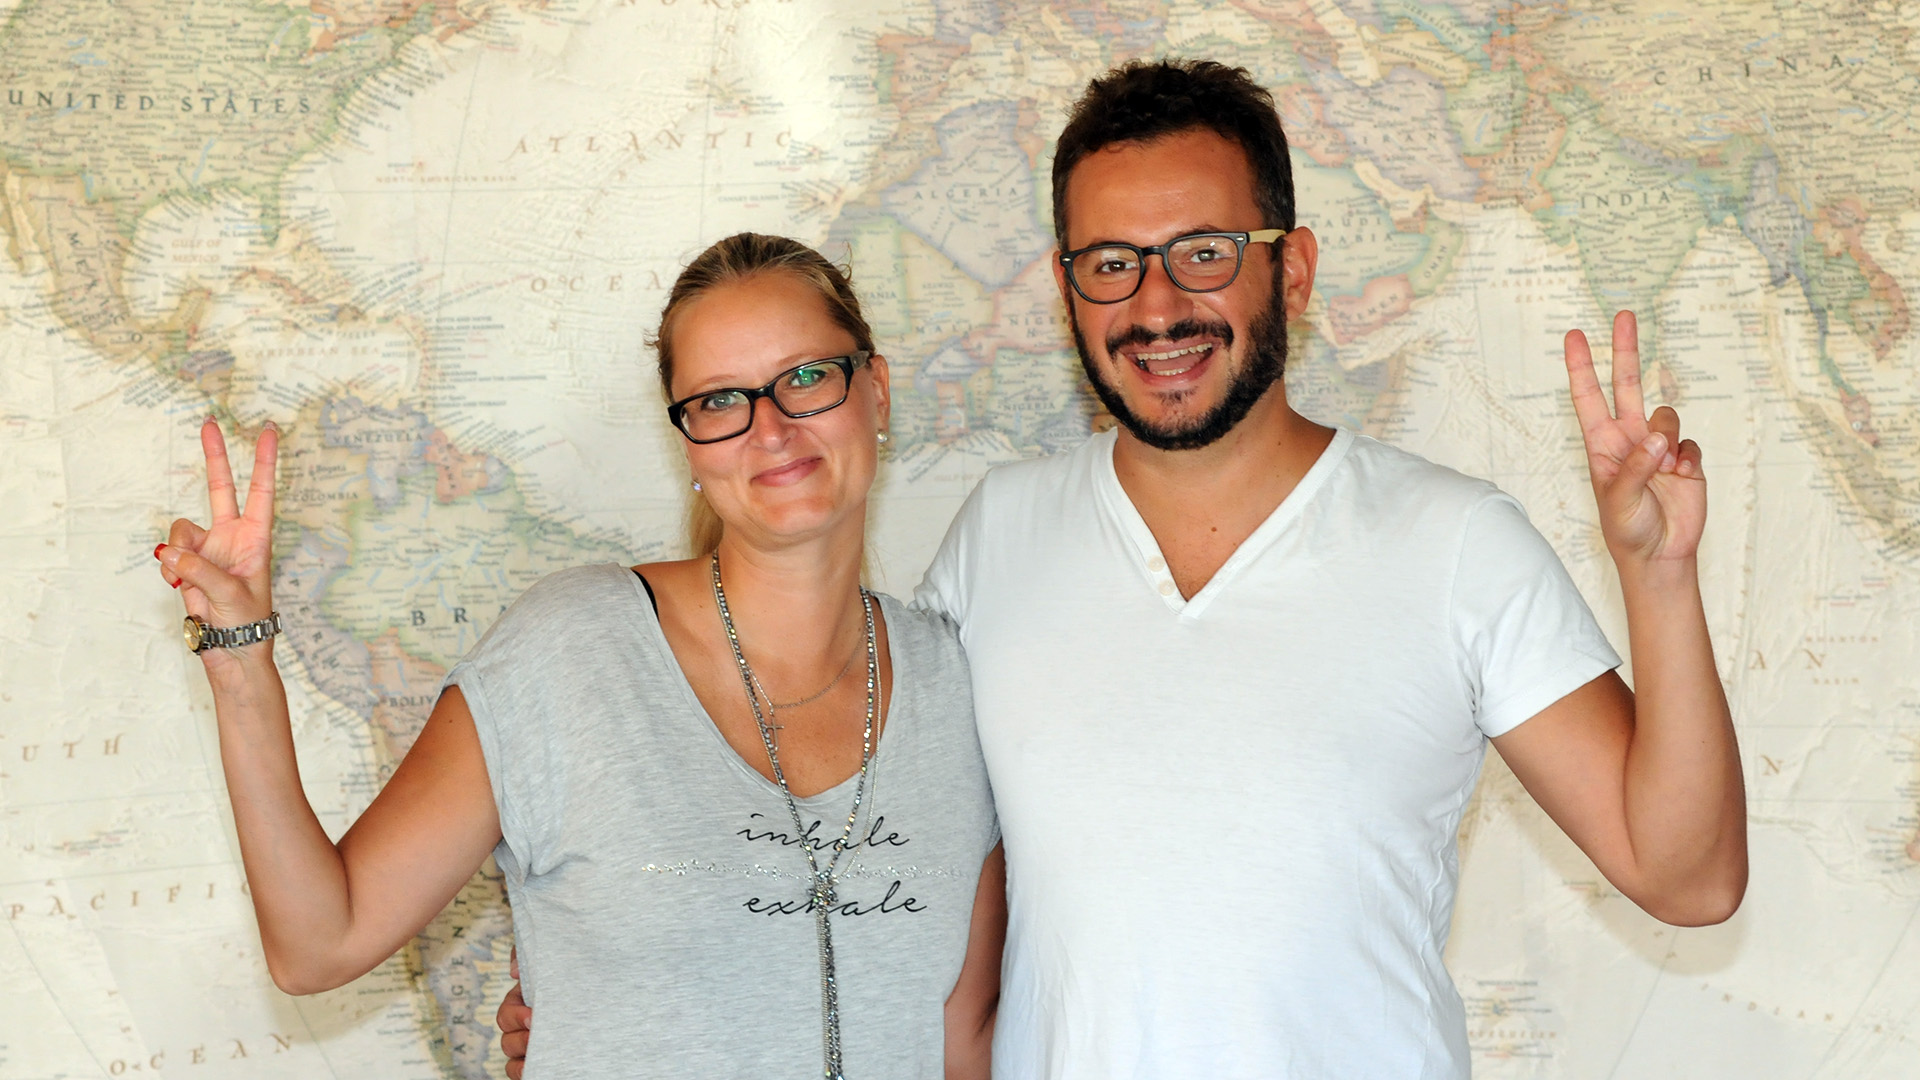 Two people standing in front of a ten foot wide map of the world, smiling and making peace signs